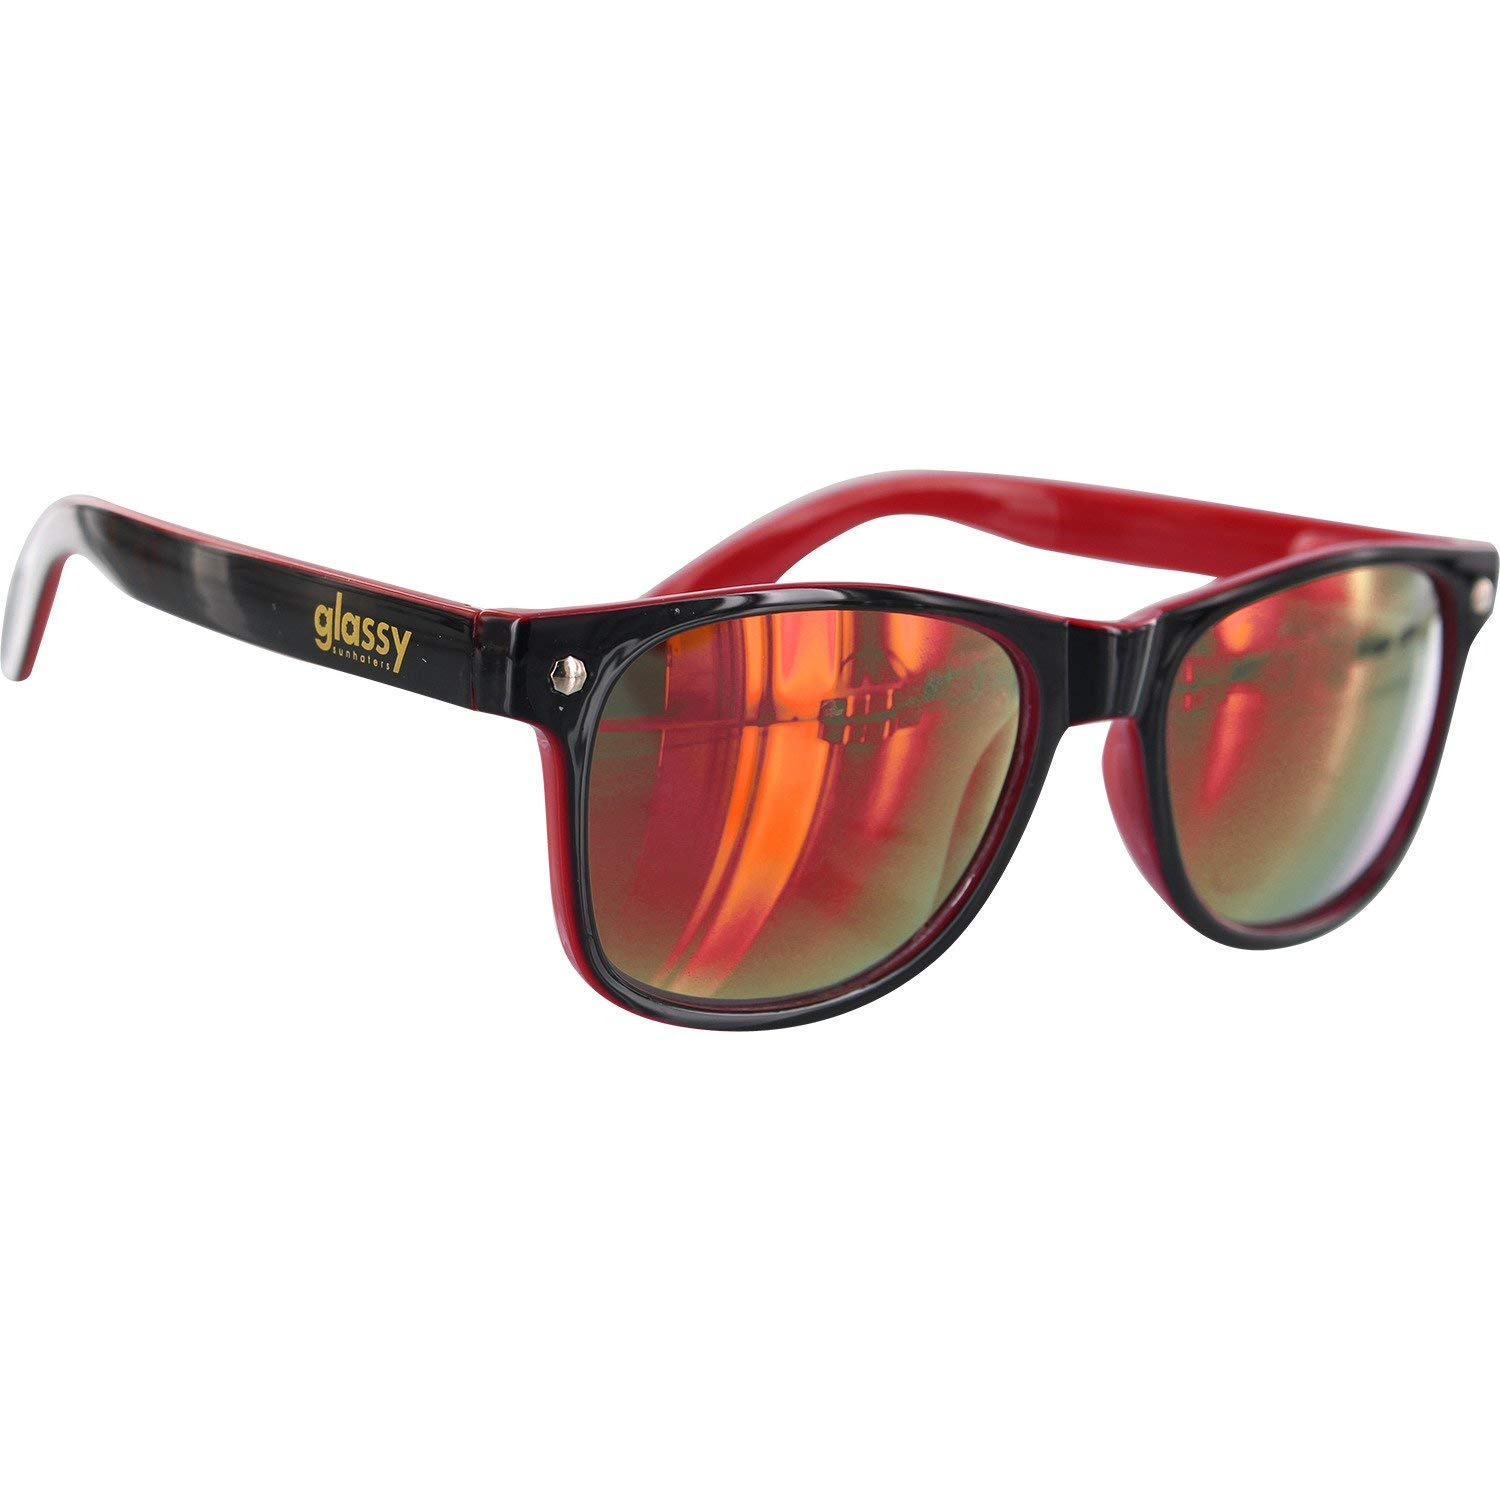 a4d44272cc Get Quotations · Glassy Sunhaters Leonard Black   Red Mirror Sunglasses